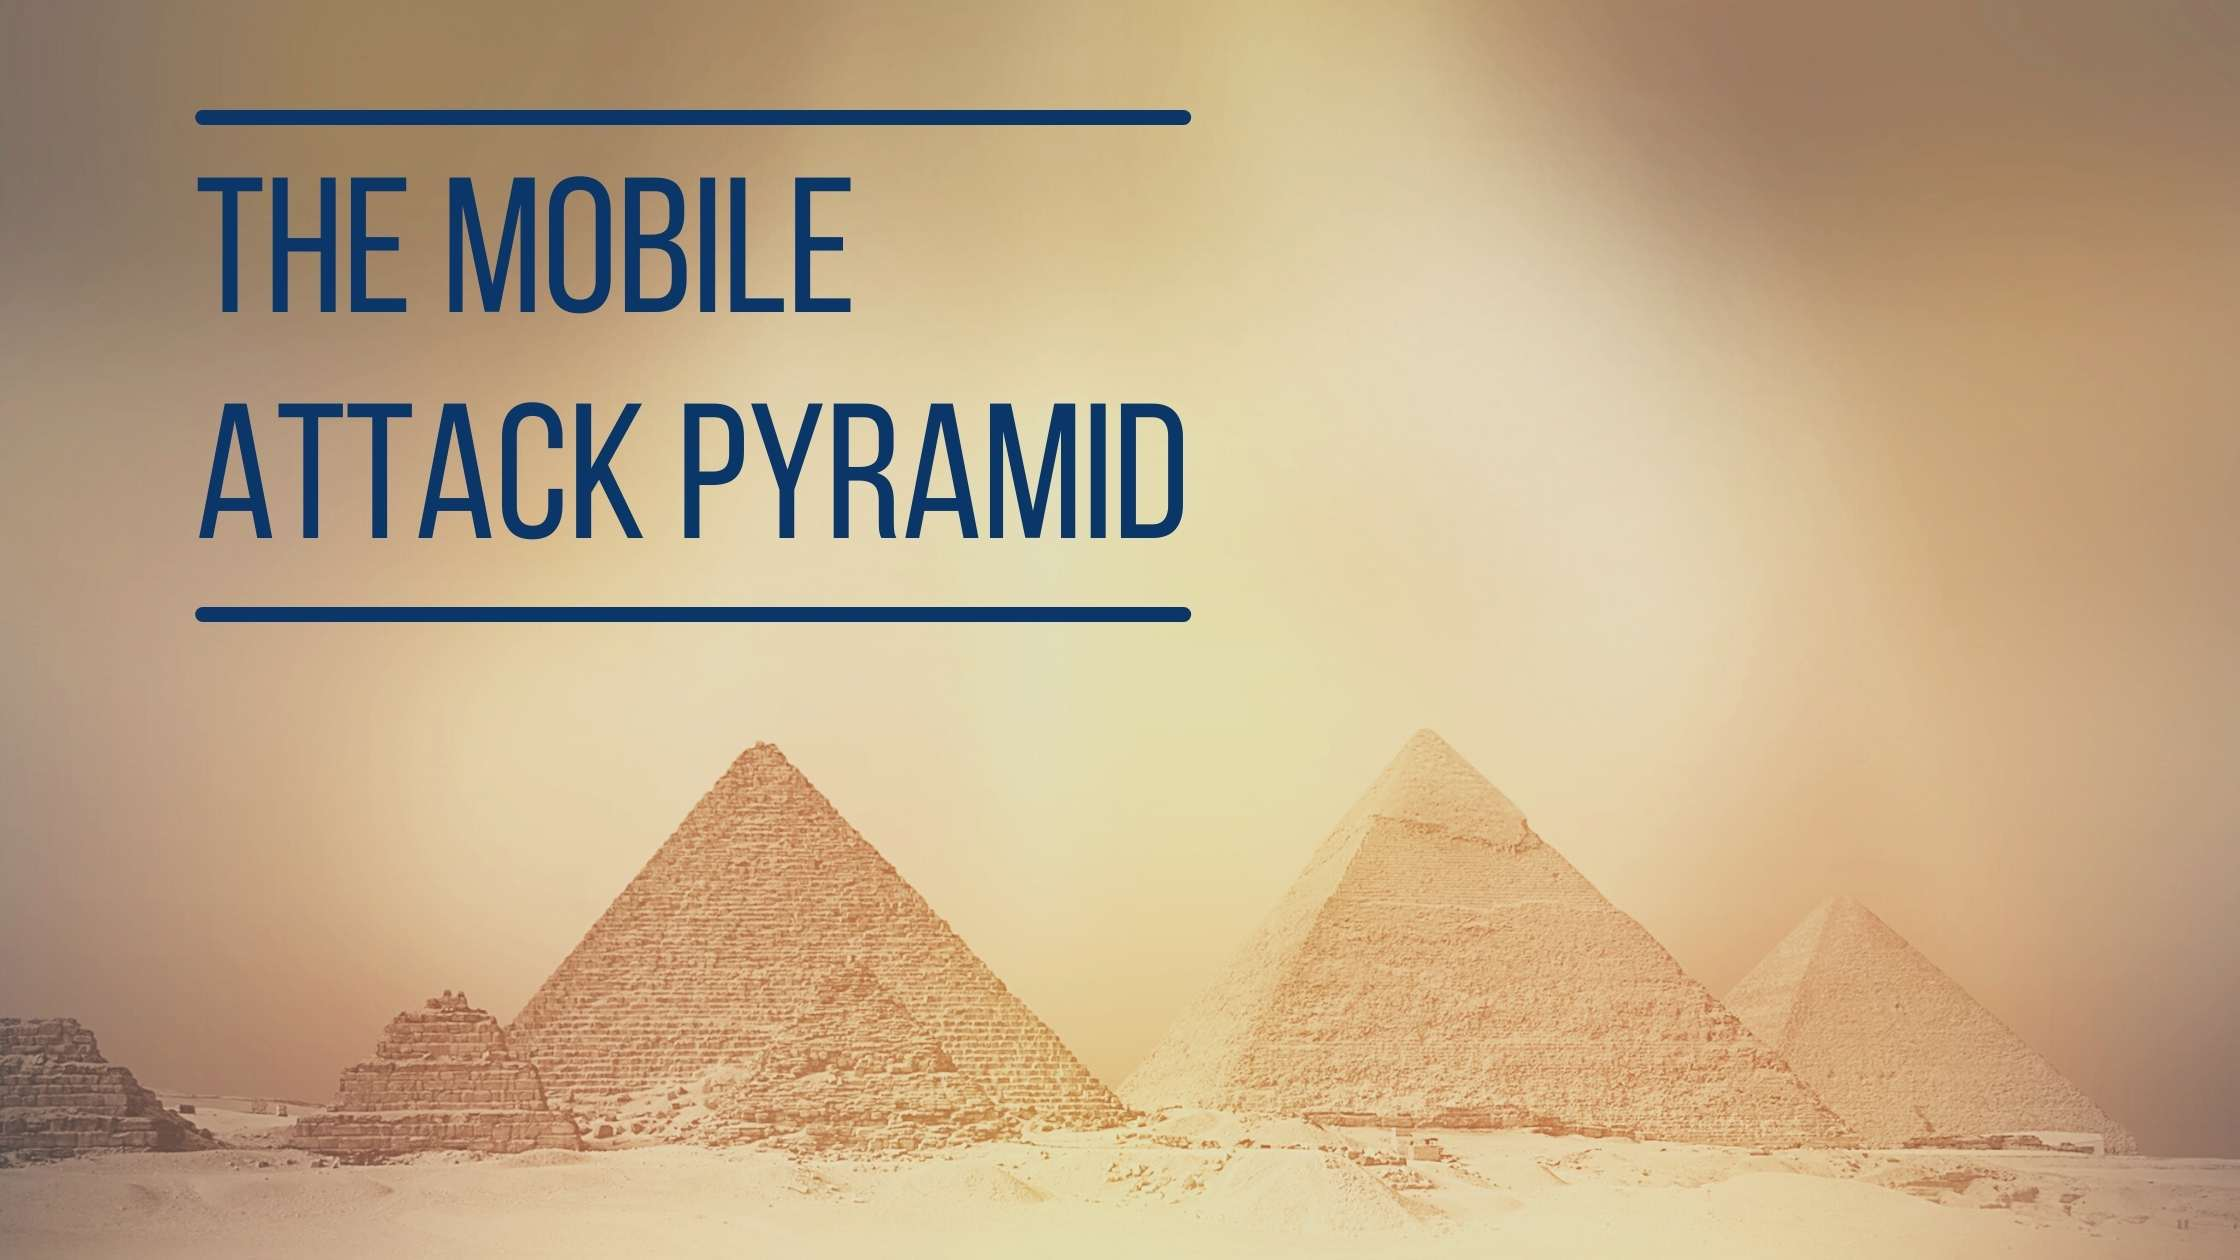 Egyptian pyramids; text 'The Mobile Attack Pyramid' between two horizontal lines